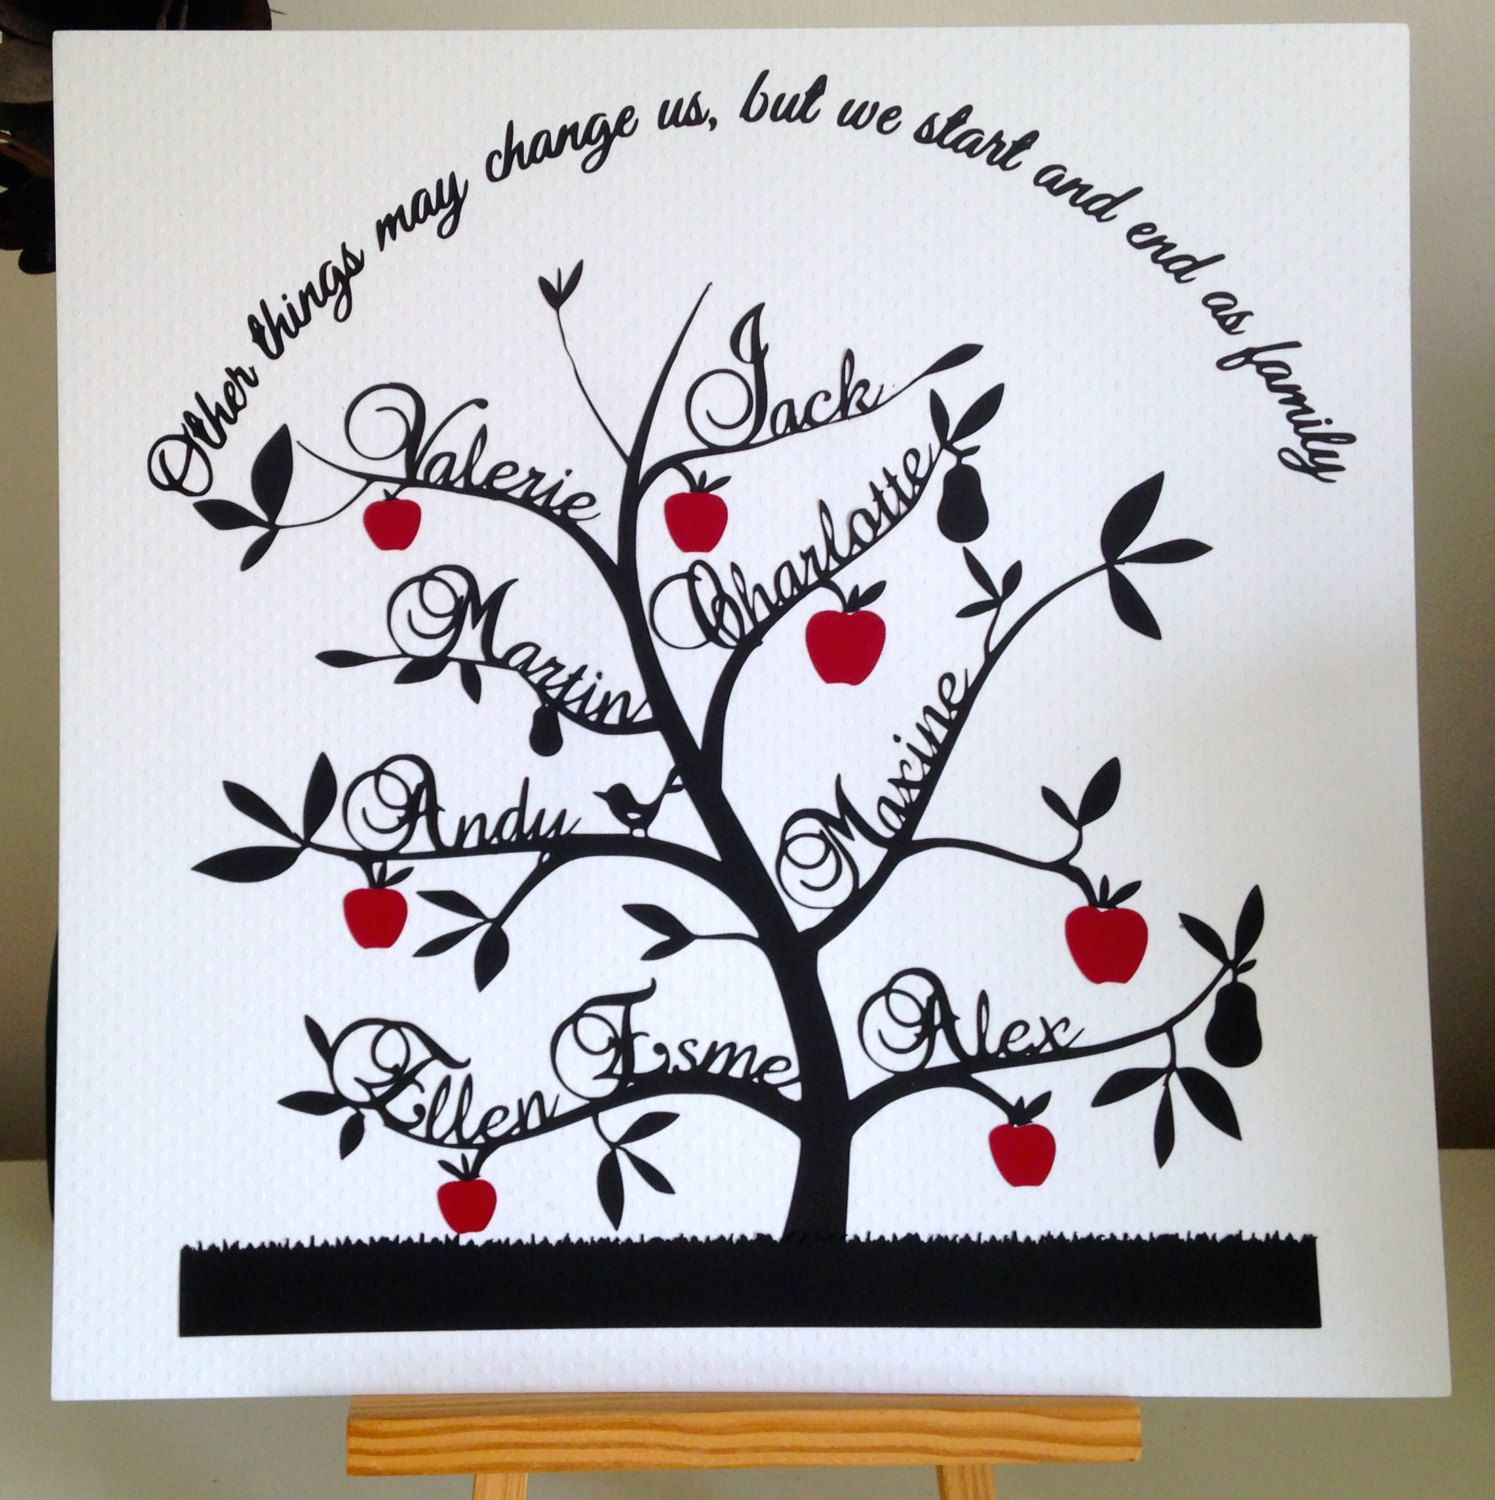 paper cut family tree with 9 names cute saying and red